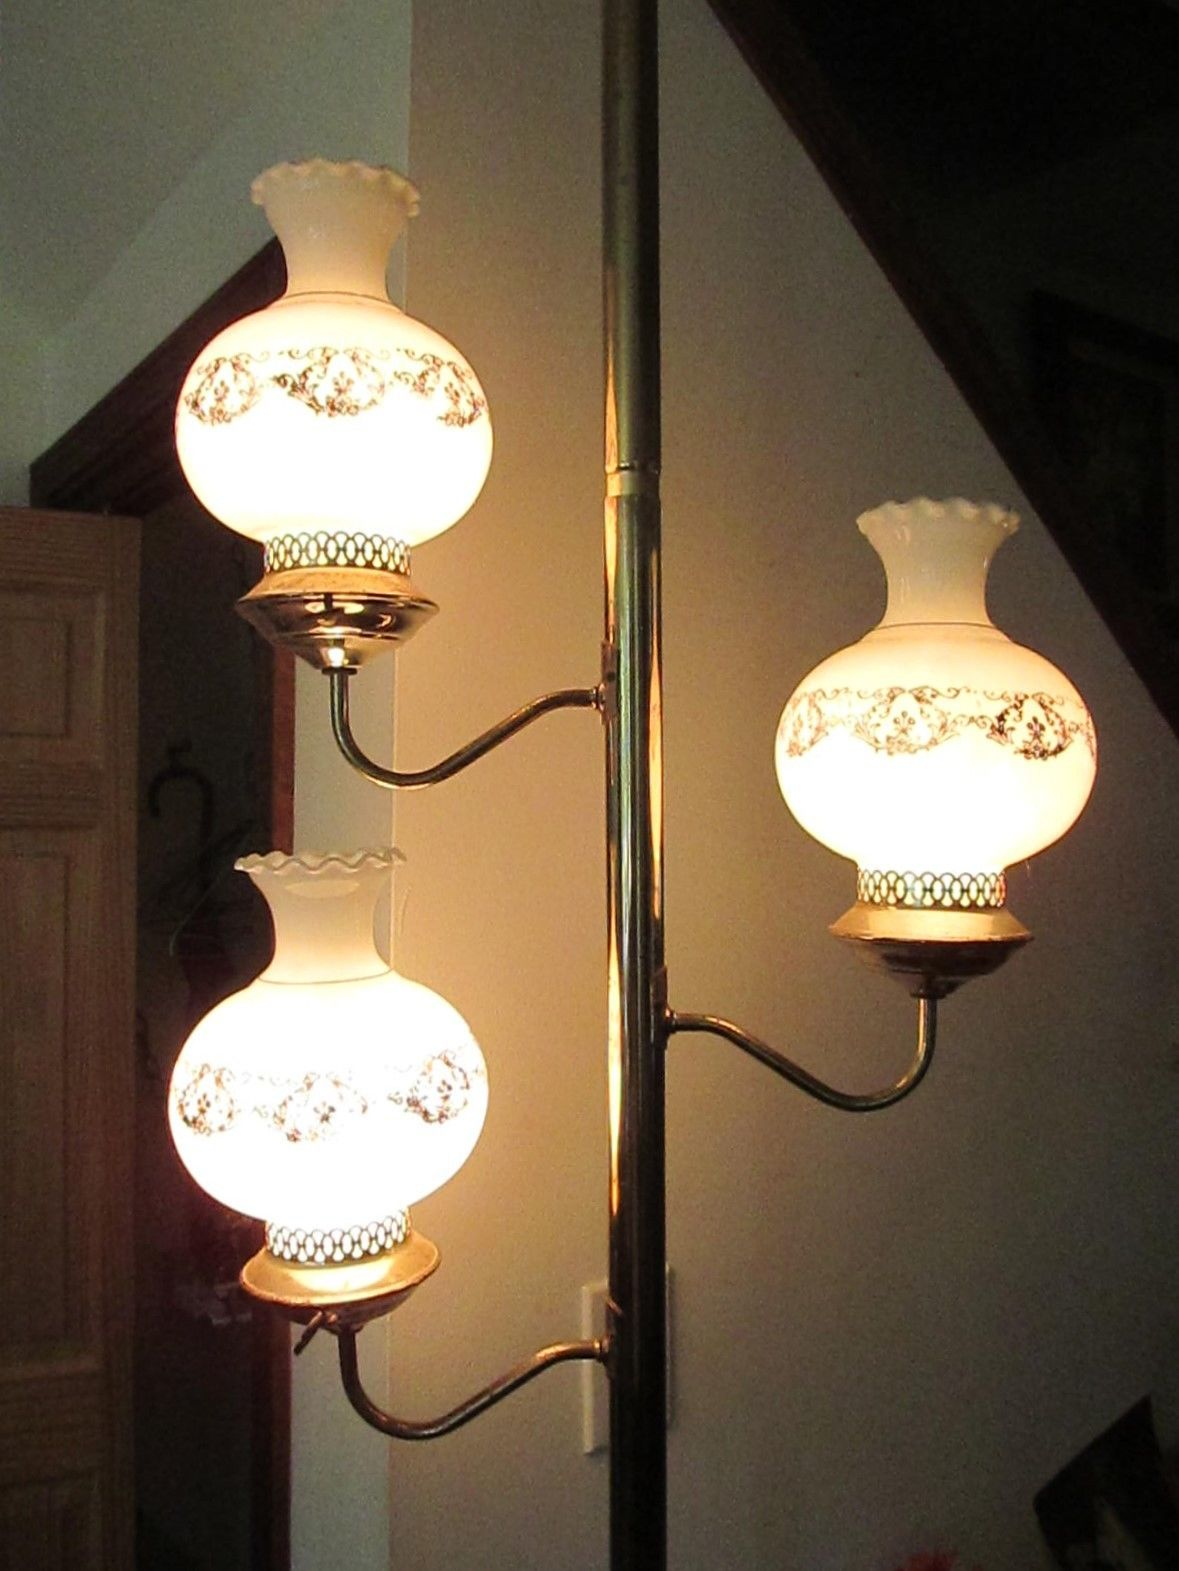 Vintage Tension Pole Lamp 16 Bonuses To The Beauty Of